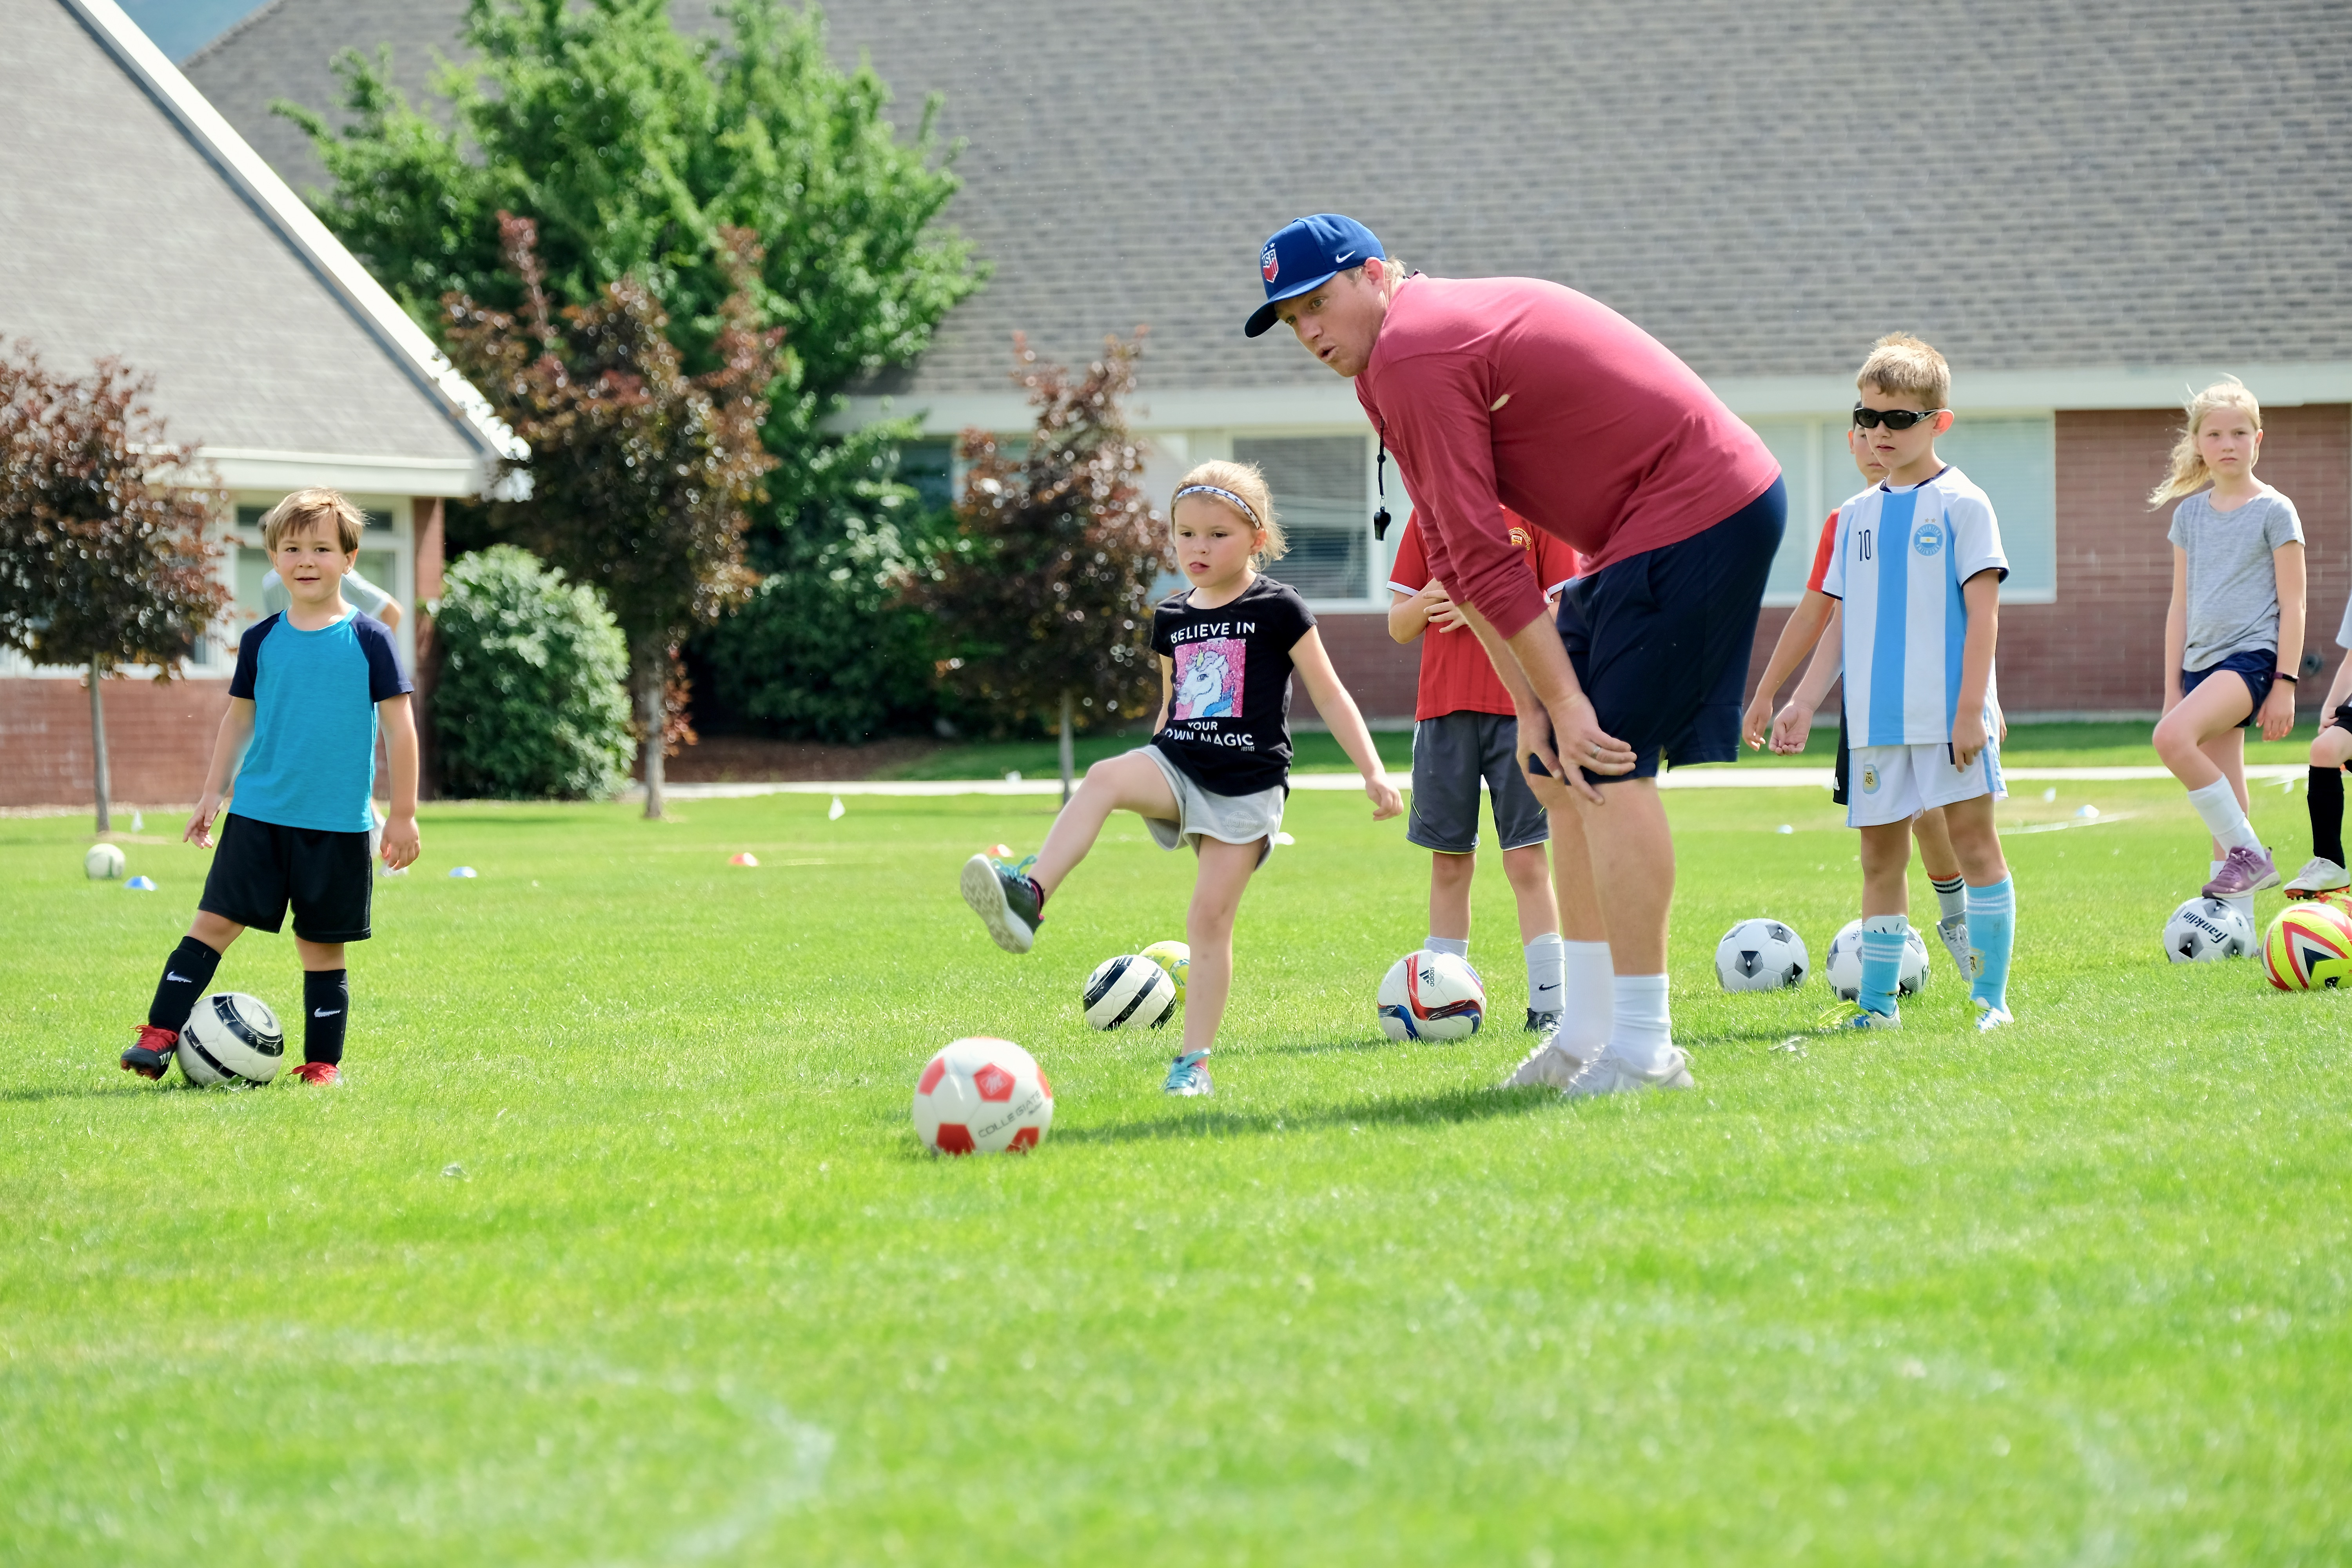 Young Soccer campers